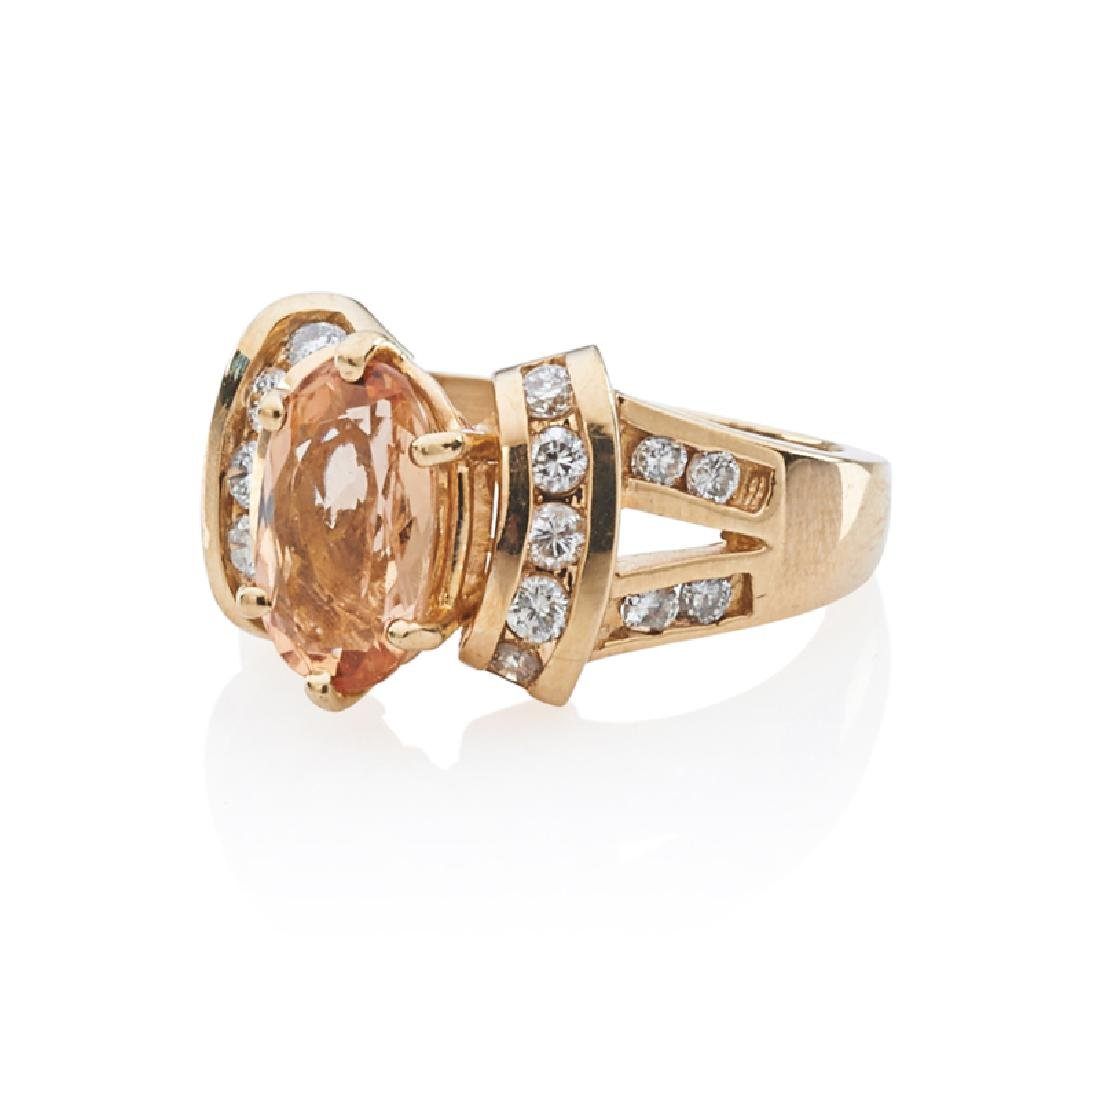 IMPERIAL TOPAZ, DIAMOND & YELLOW GOLD RING